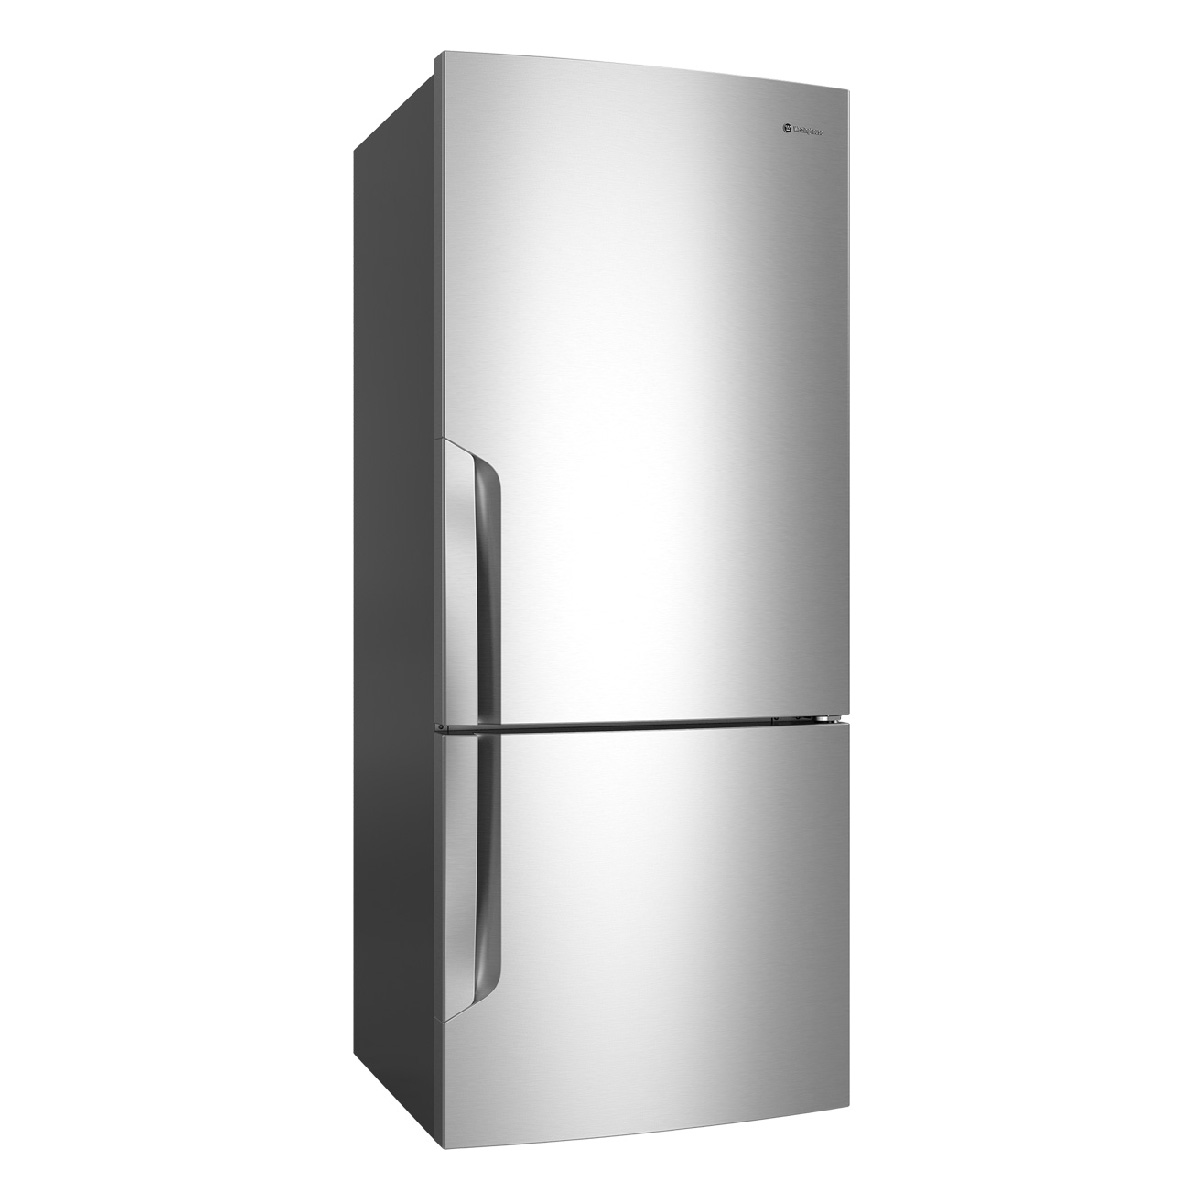 Westinghouse WBE4500SAR 455L Bottom Mount Fridge